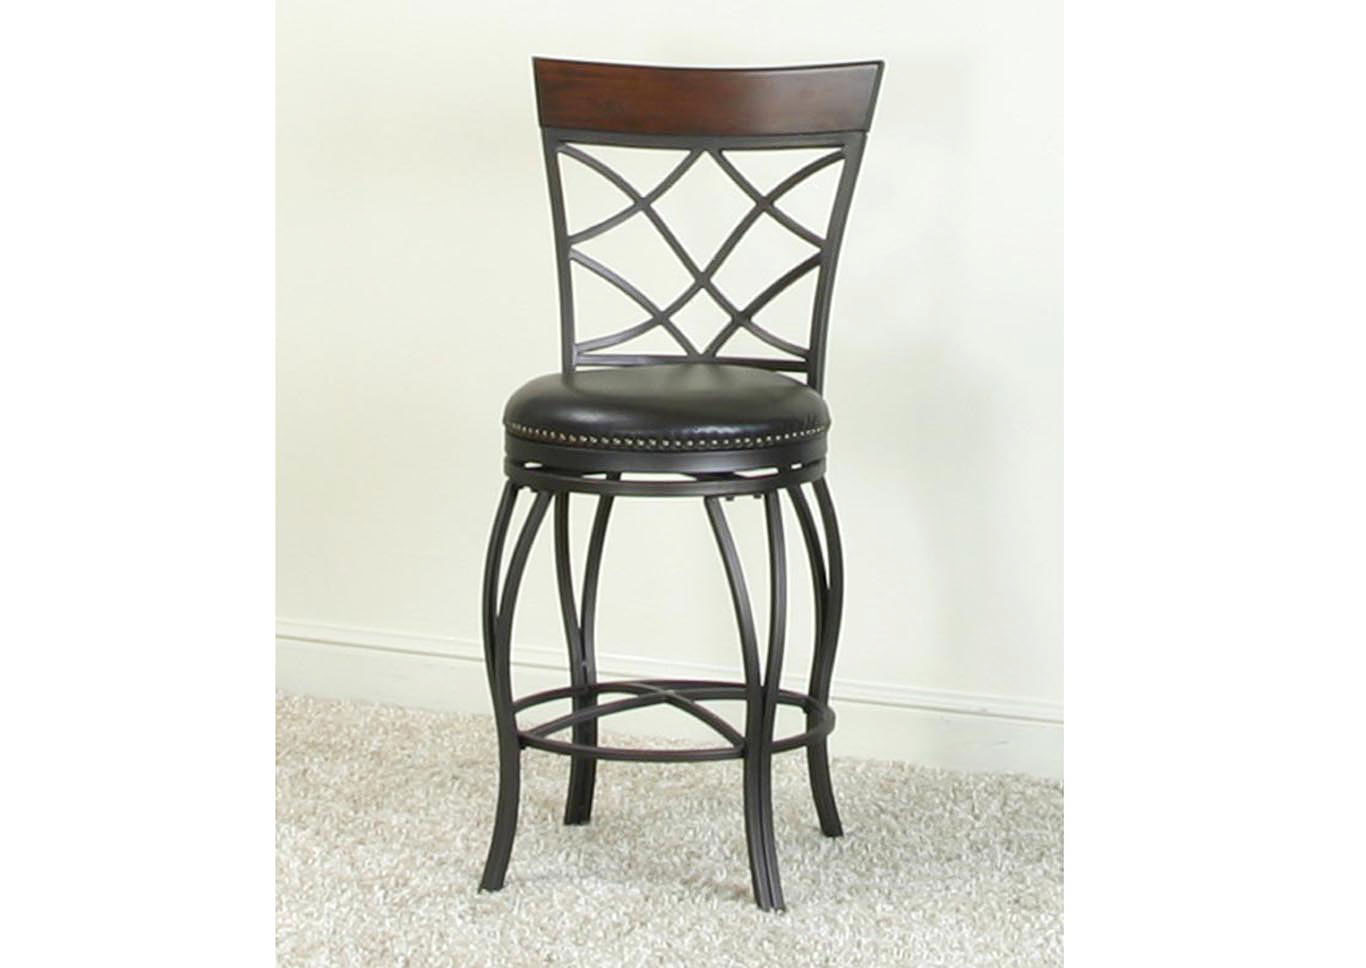 Bailey Counter Stool,Huffman Koos